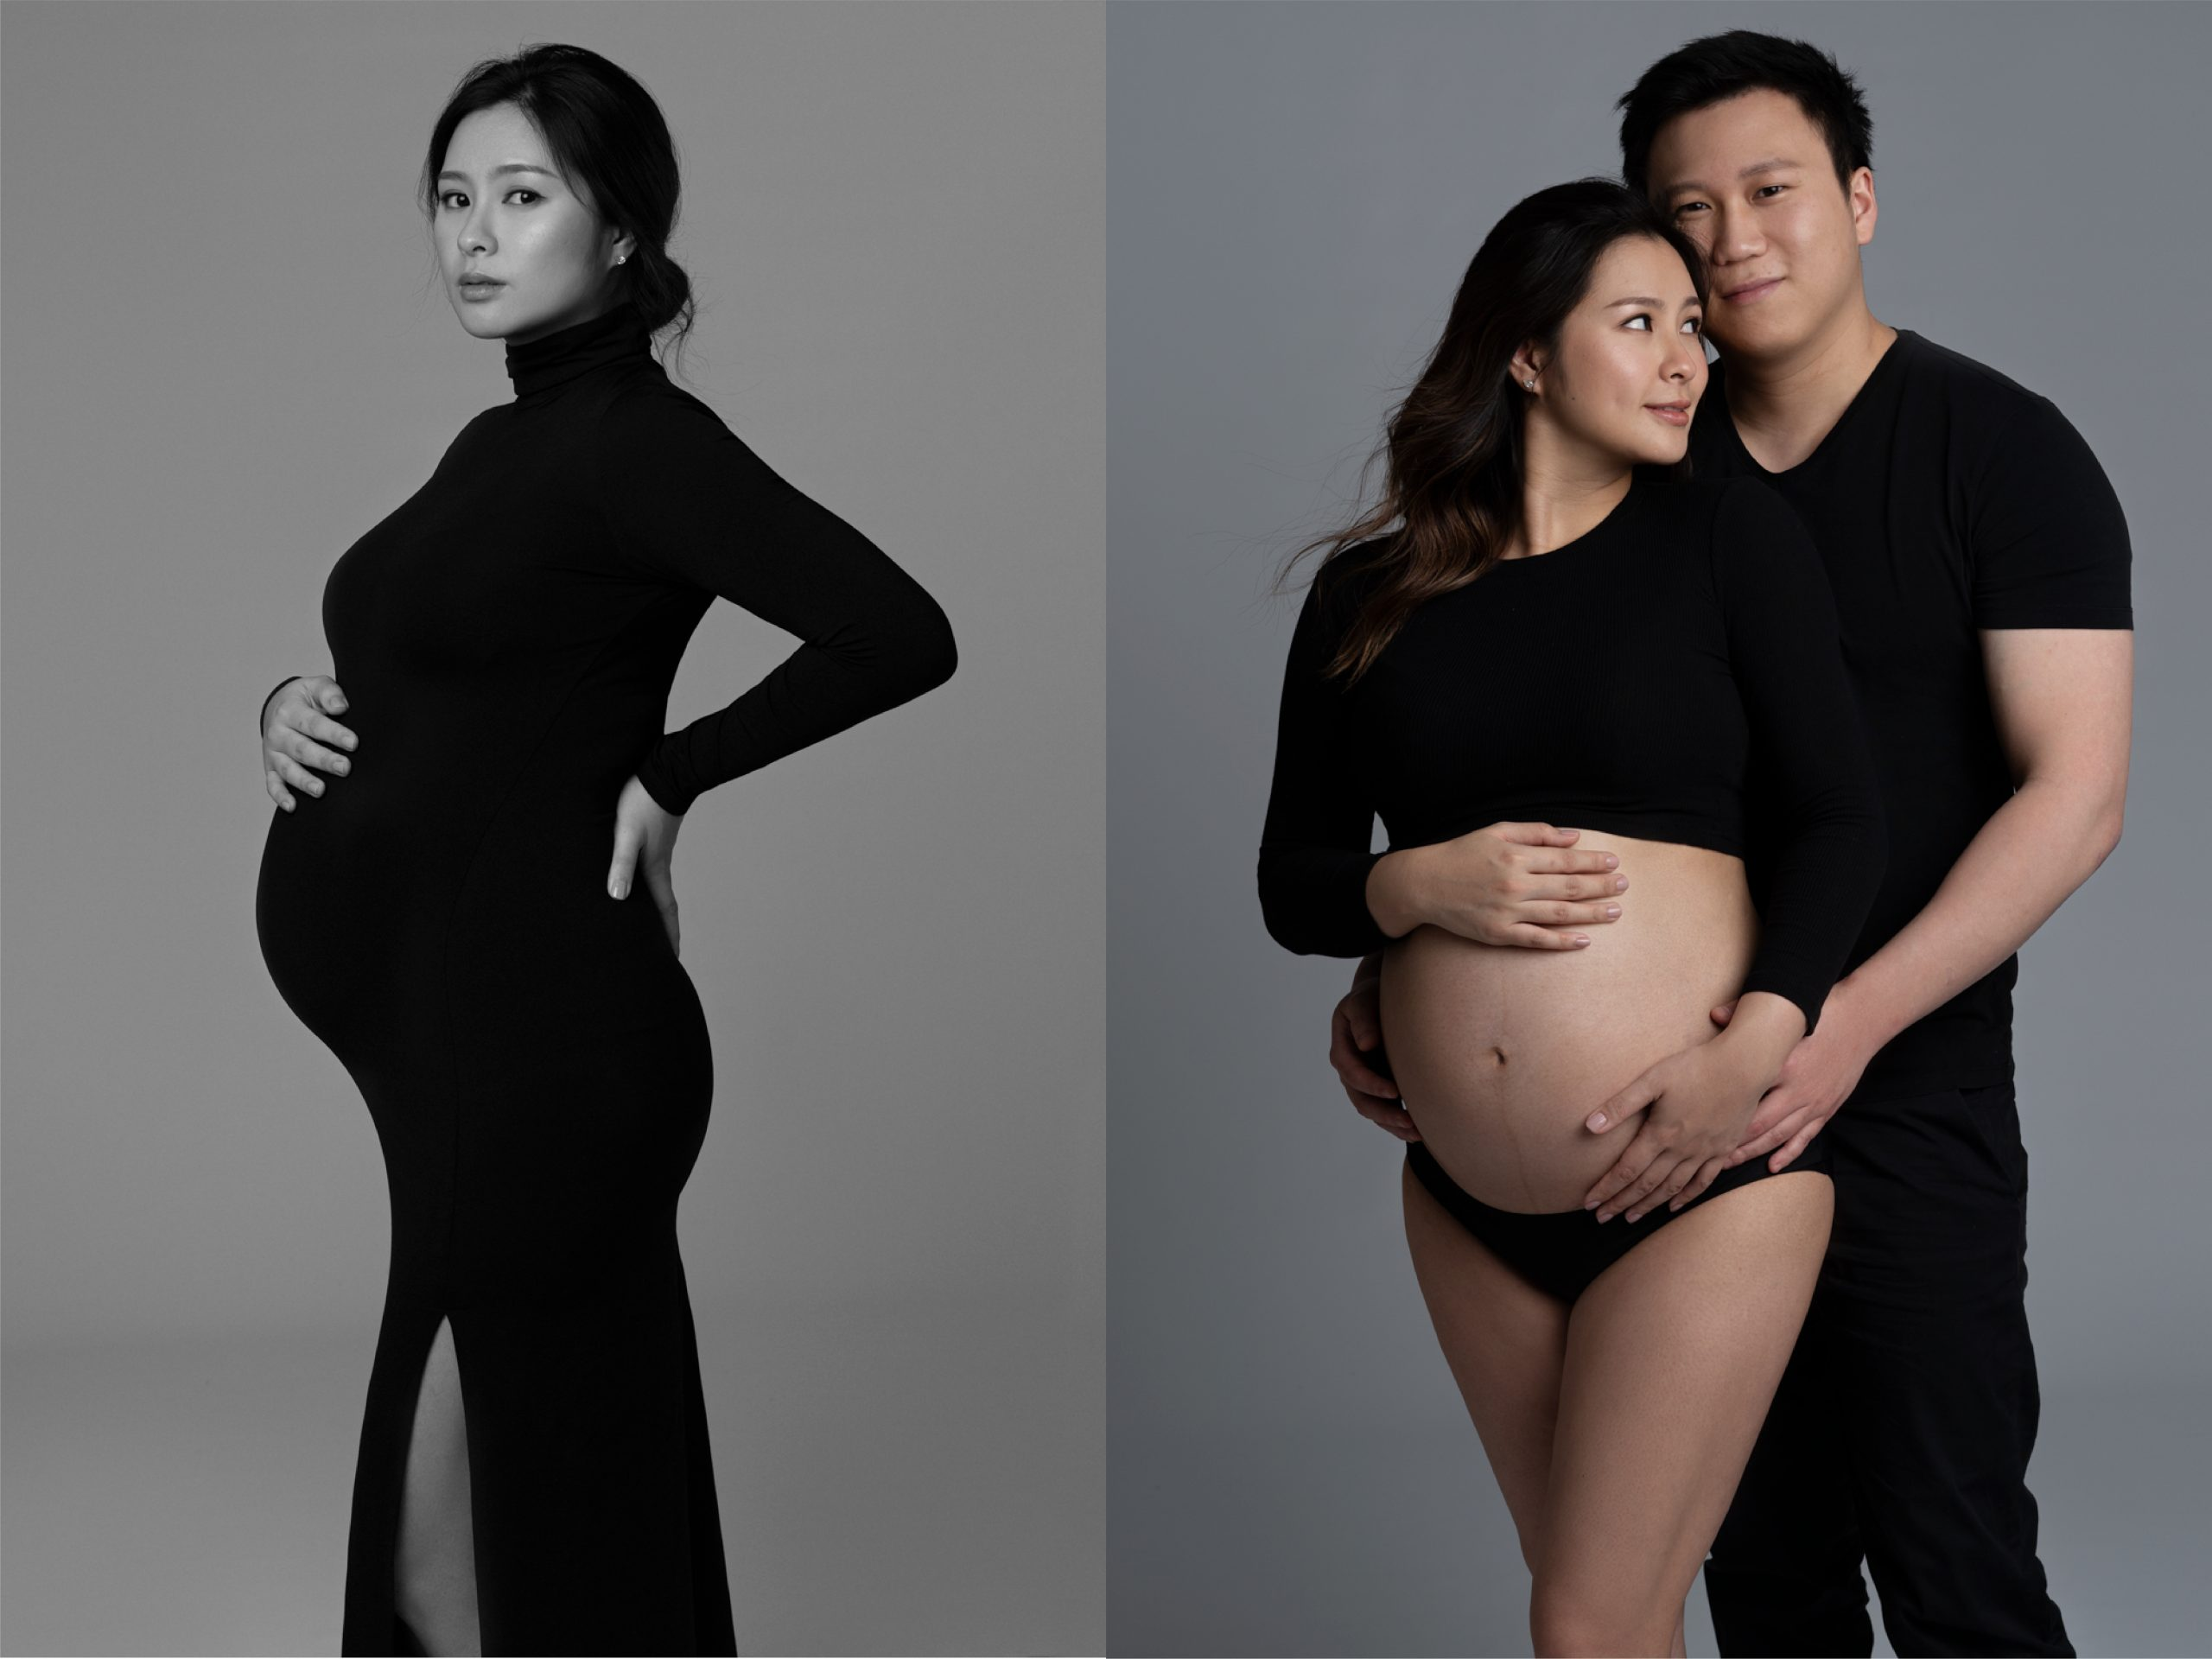 hk hong kong maternity photography fashion editorial fine art